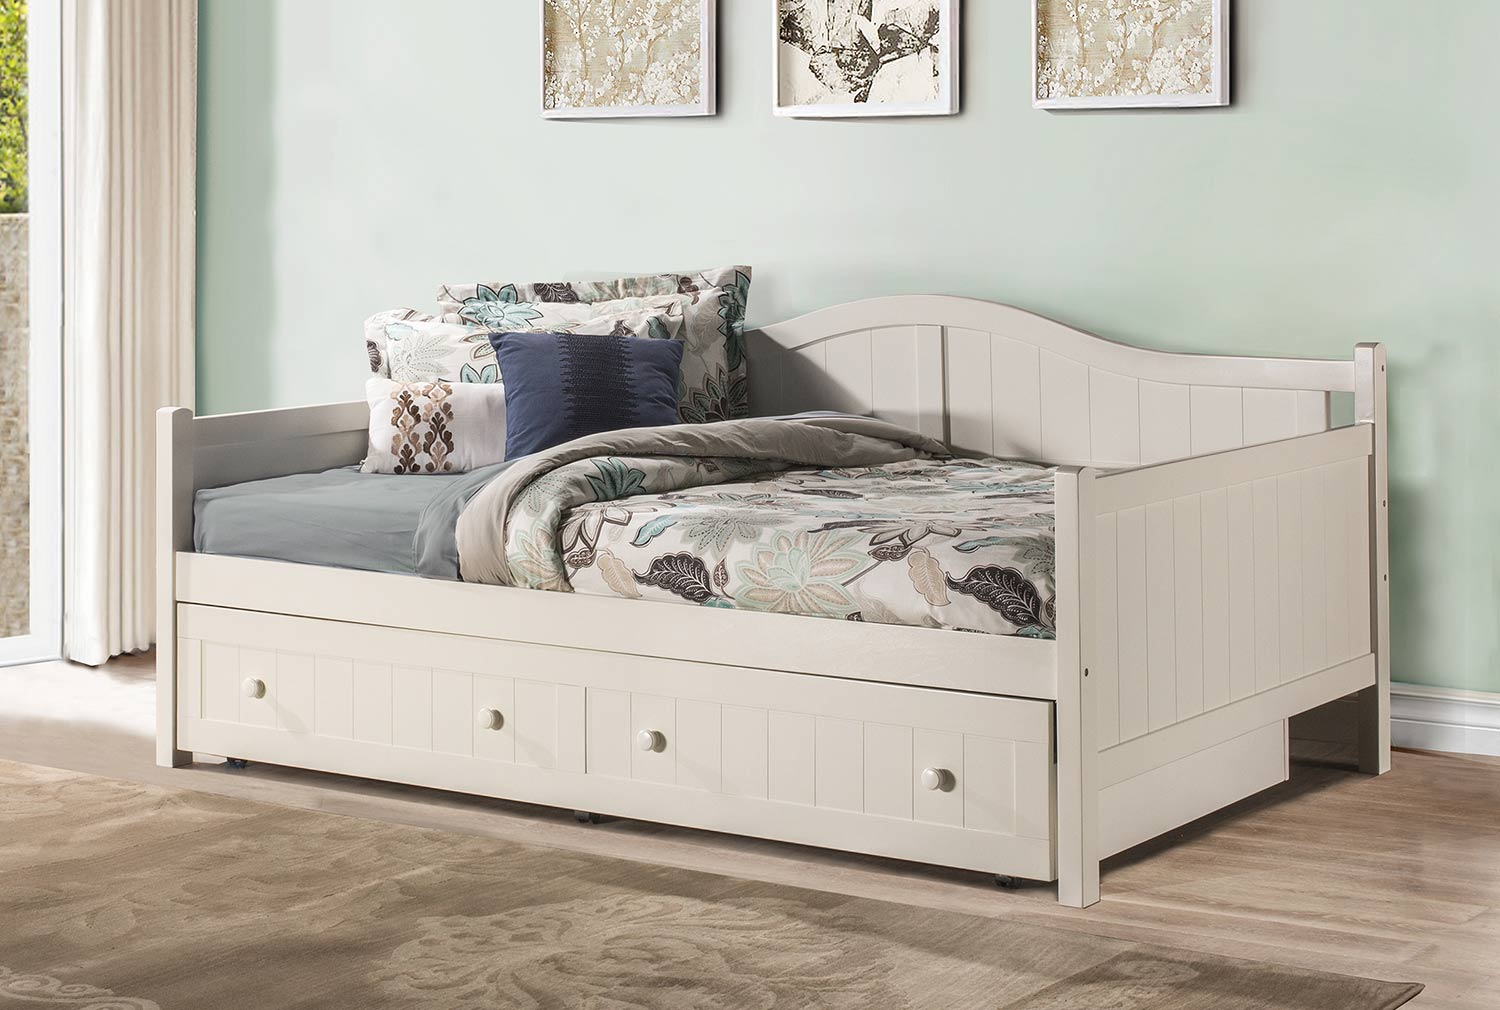 - Hillsdale Staci Daybed With Trundle - Full - White 1525FDBT